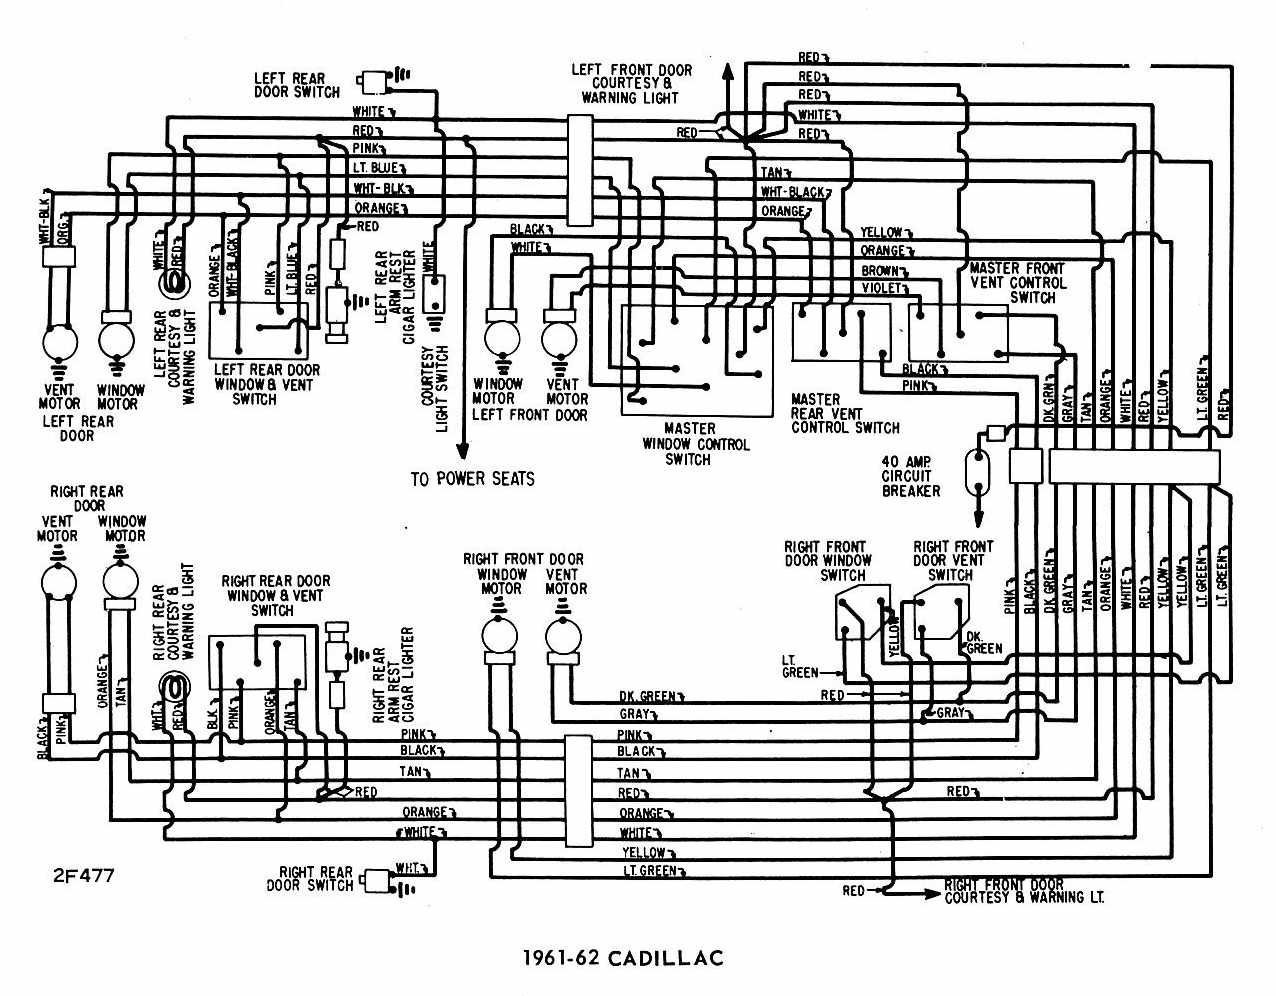 cadillac 1961 1962 windows wiring diagram all about wiring diagrams cadillac 1961 1962 windows wiring diagram